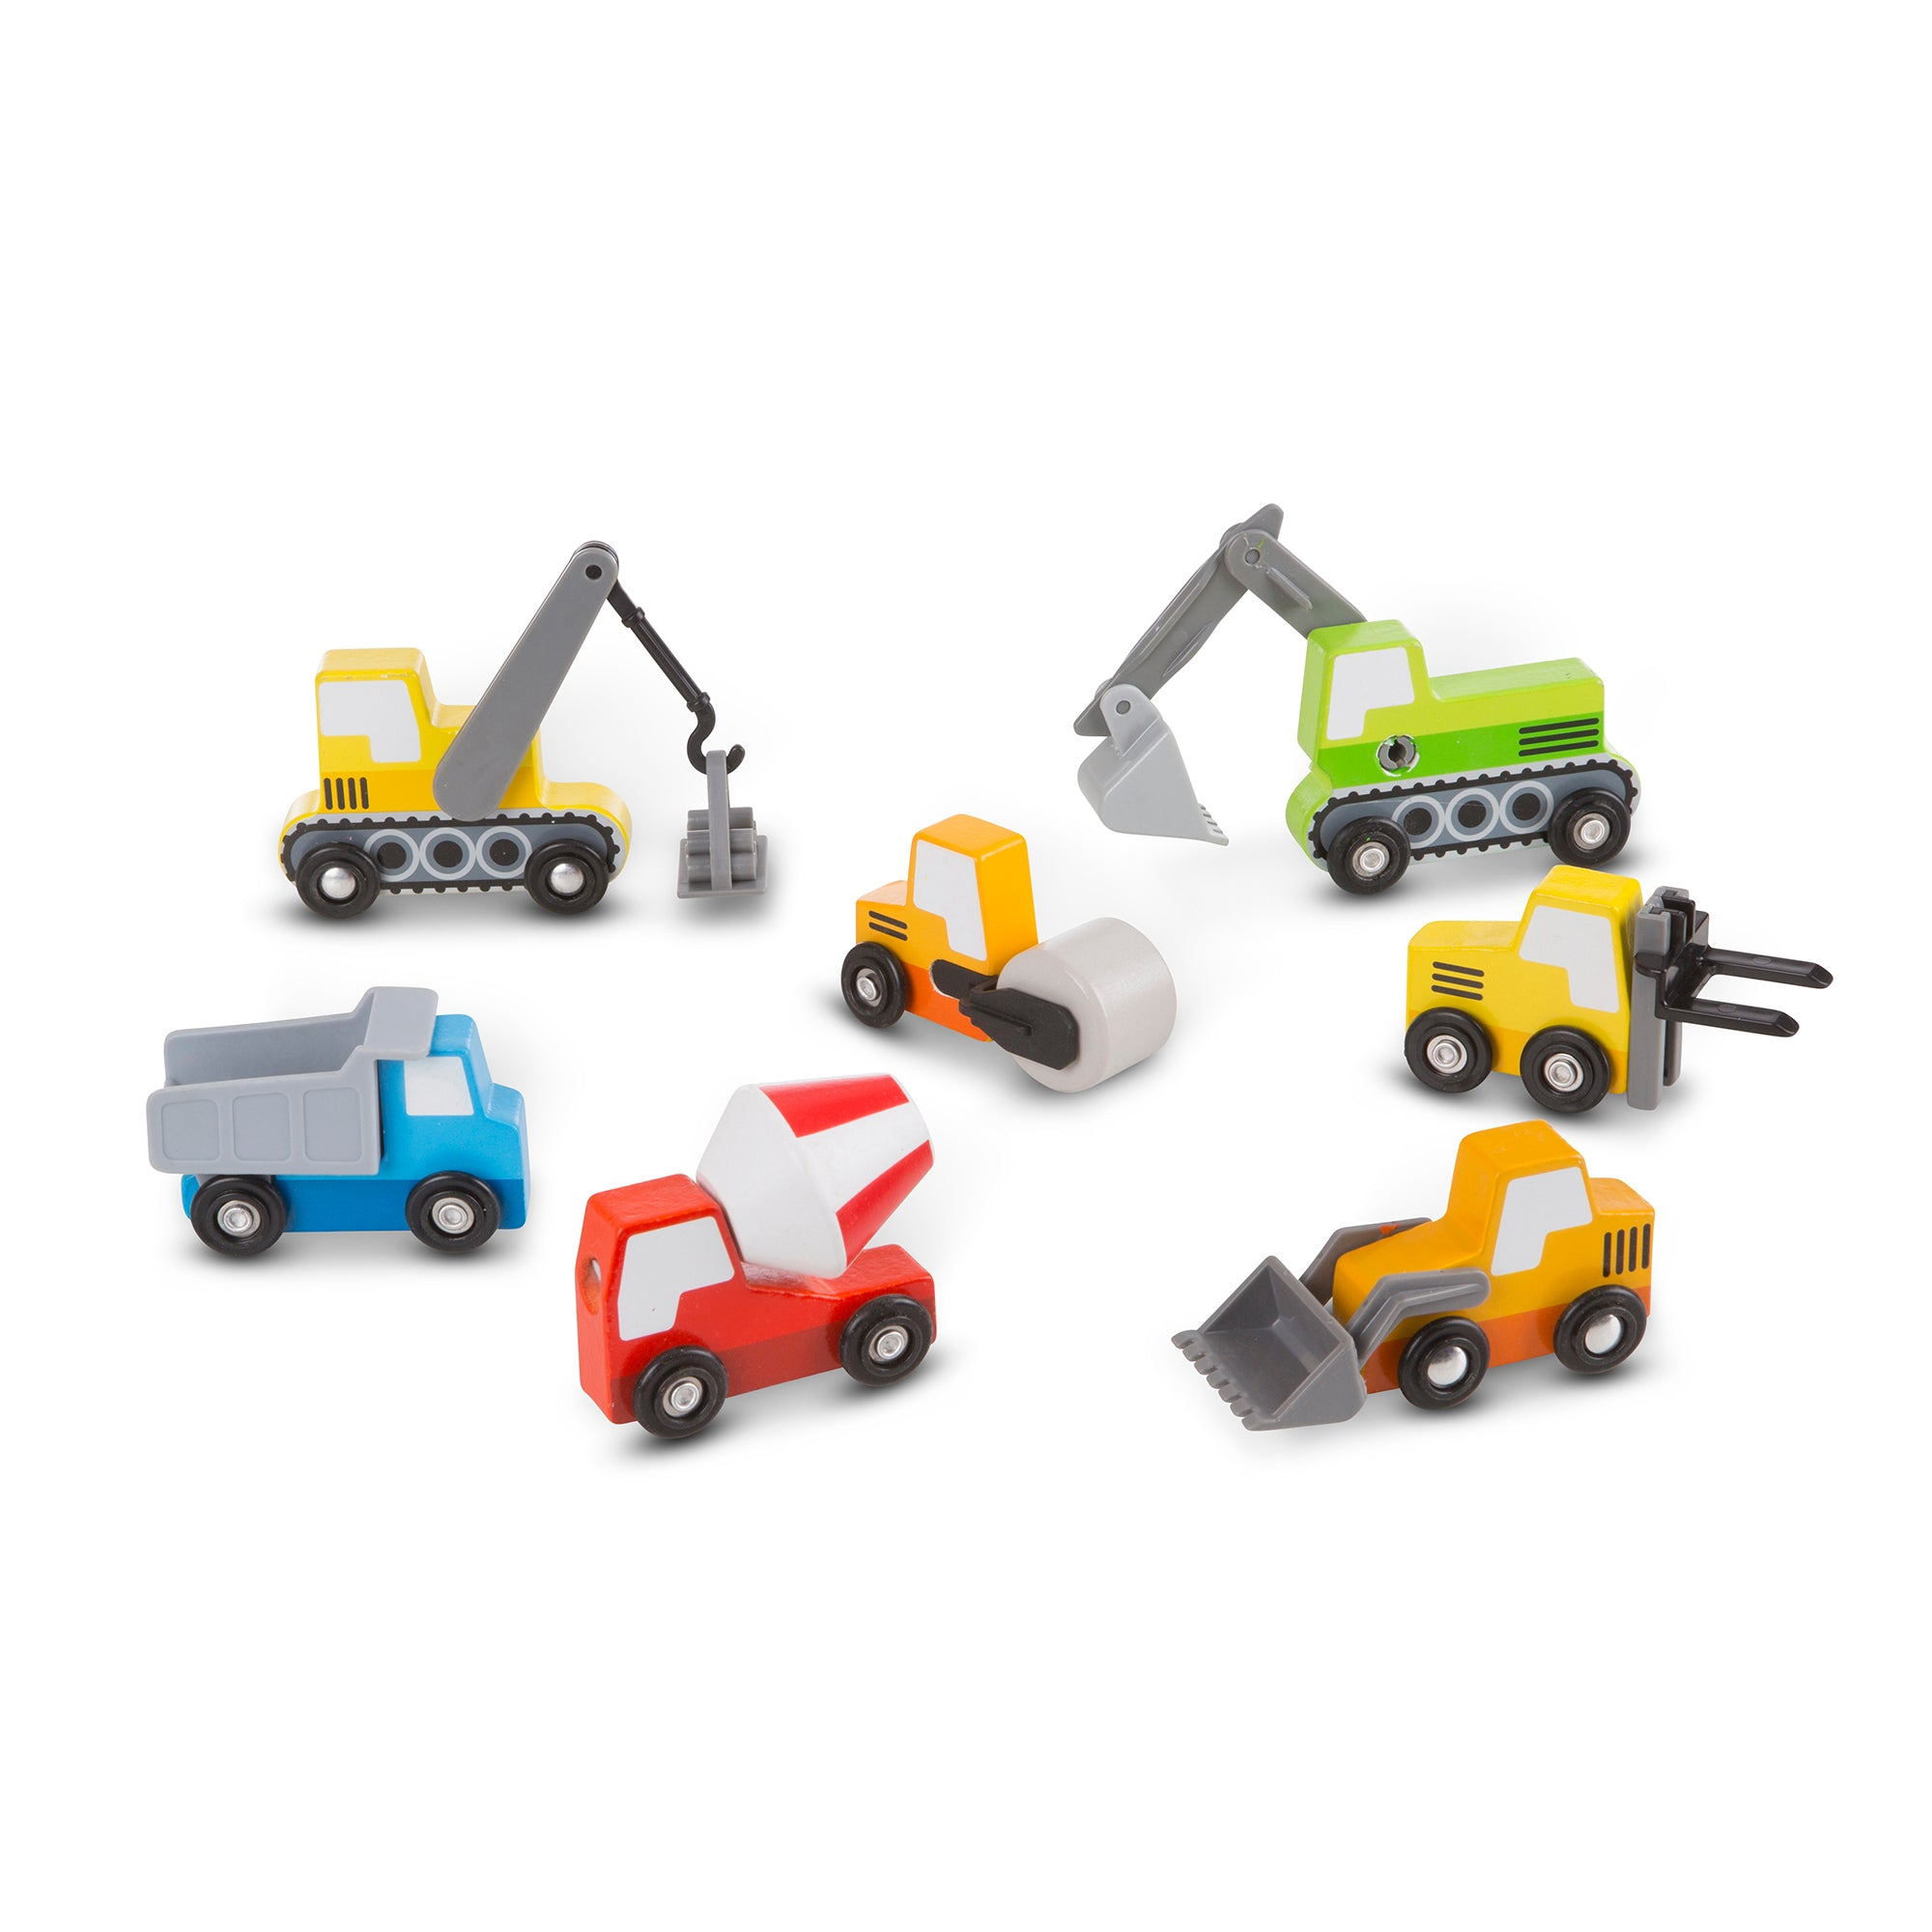 Melissa & Doug Construction Vehicles Playset